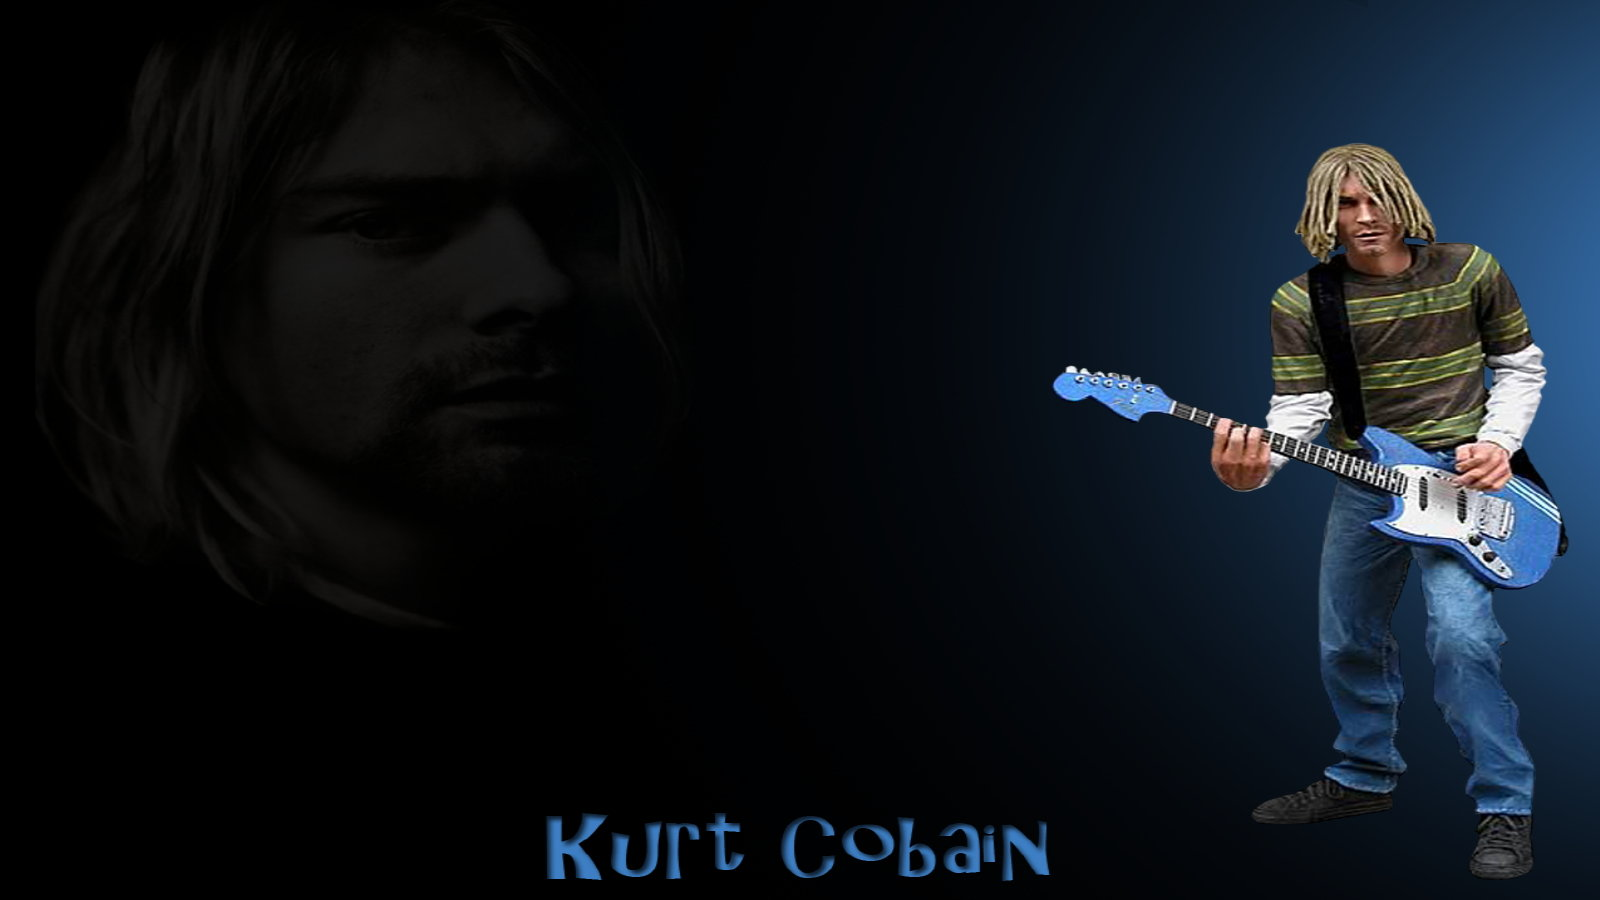 Free Kurt Cobain High Quality Wallpaper ID340568 For Hd 1600x900 PC